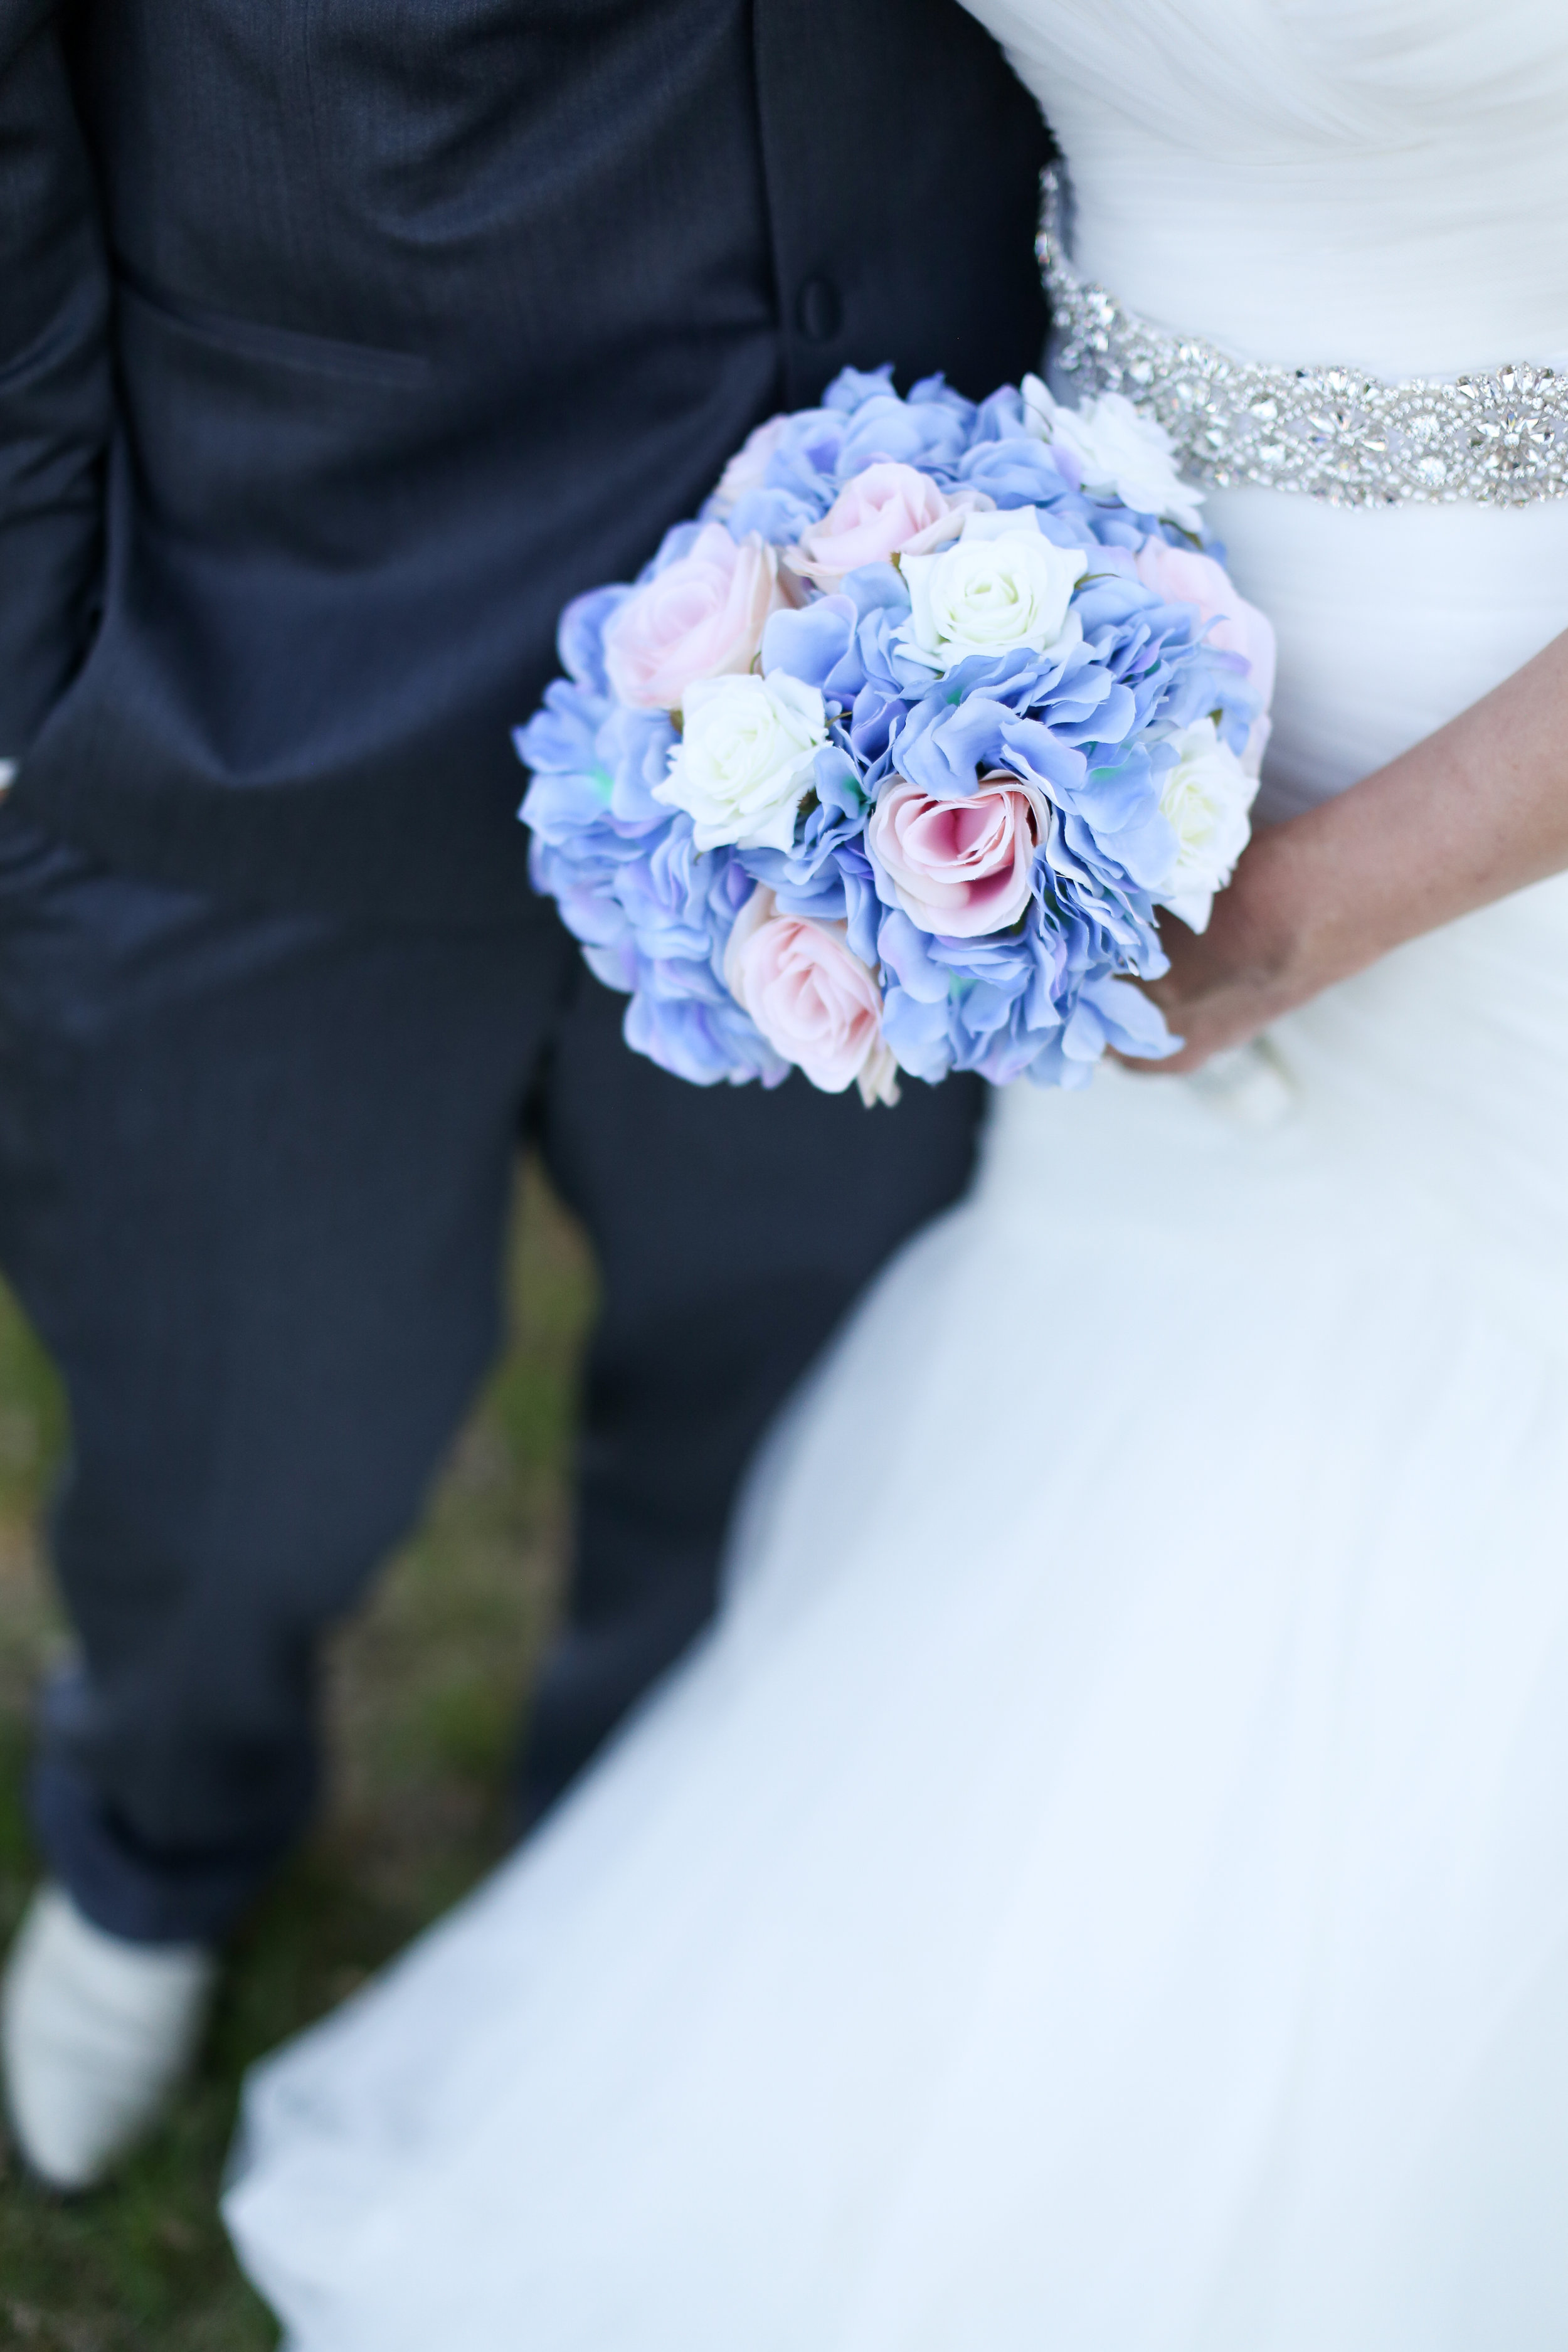 silk-wedding-flowers-bridal-bouquet-bridesmaids-bouquets.jpg